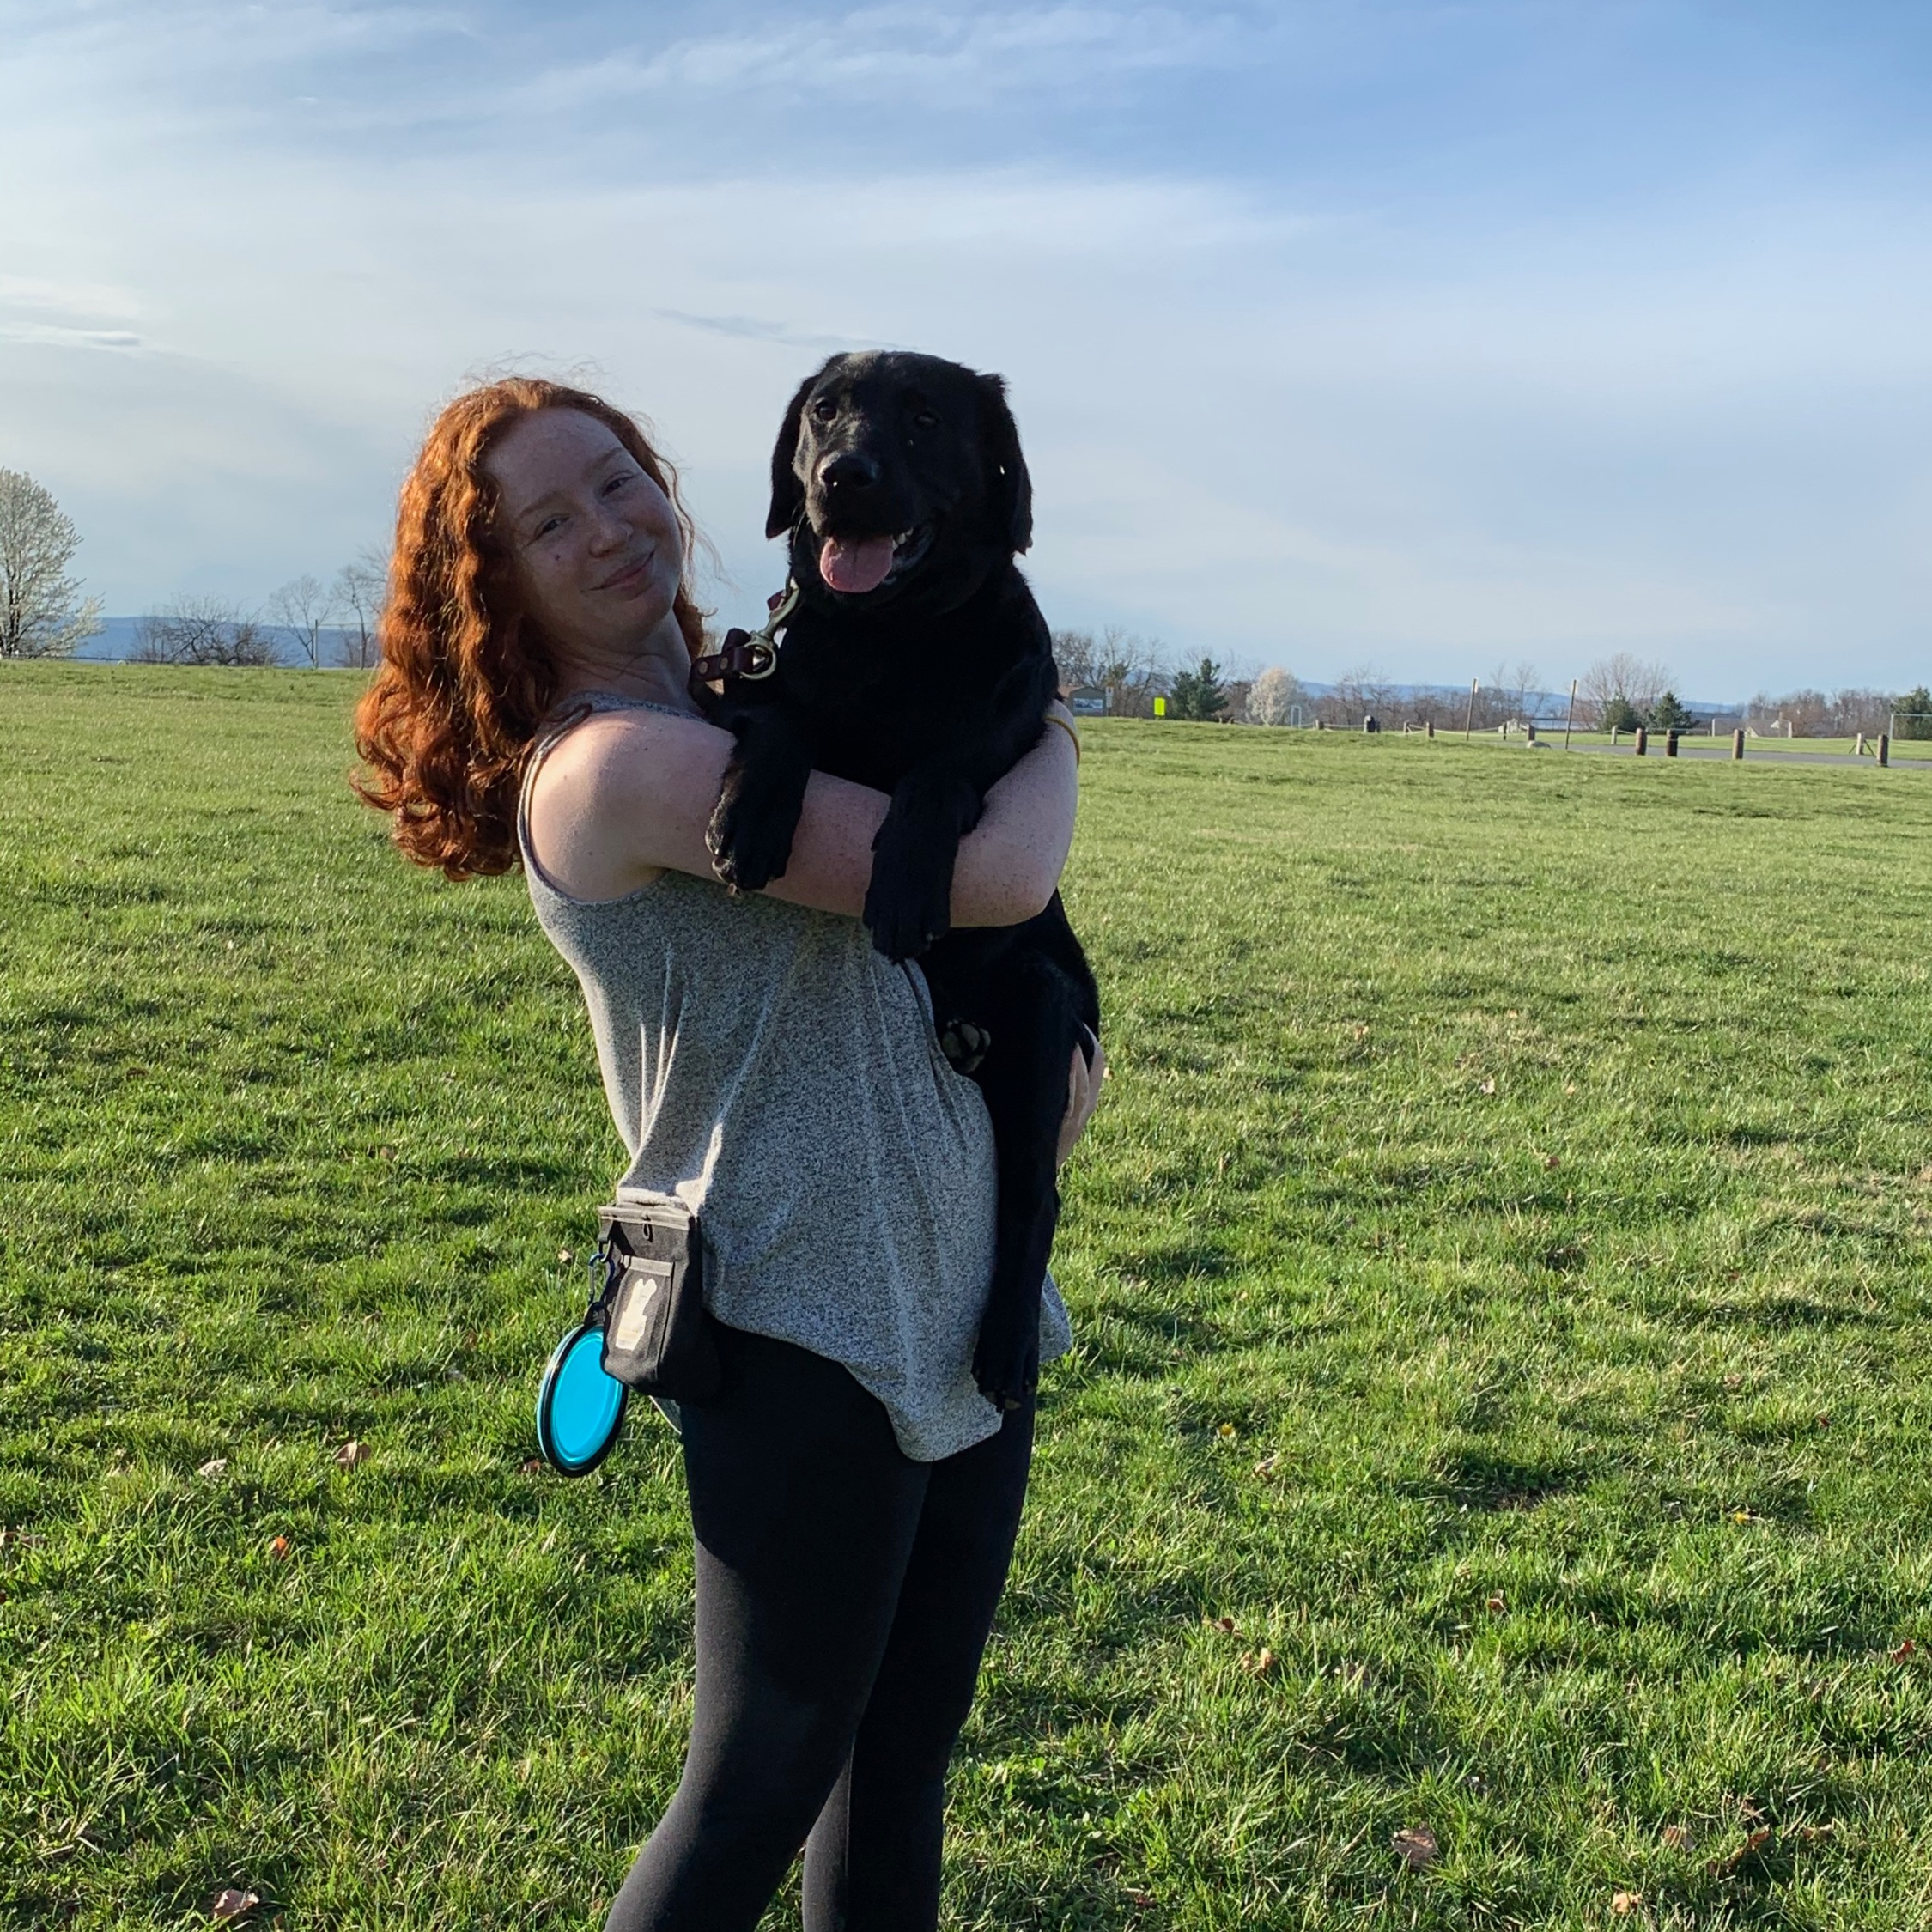 Kaitlyn stands in a grassy field and holds a black lab.